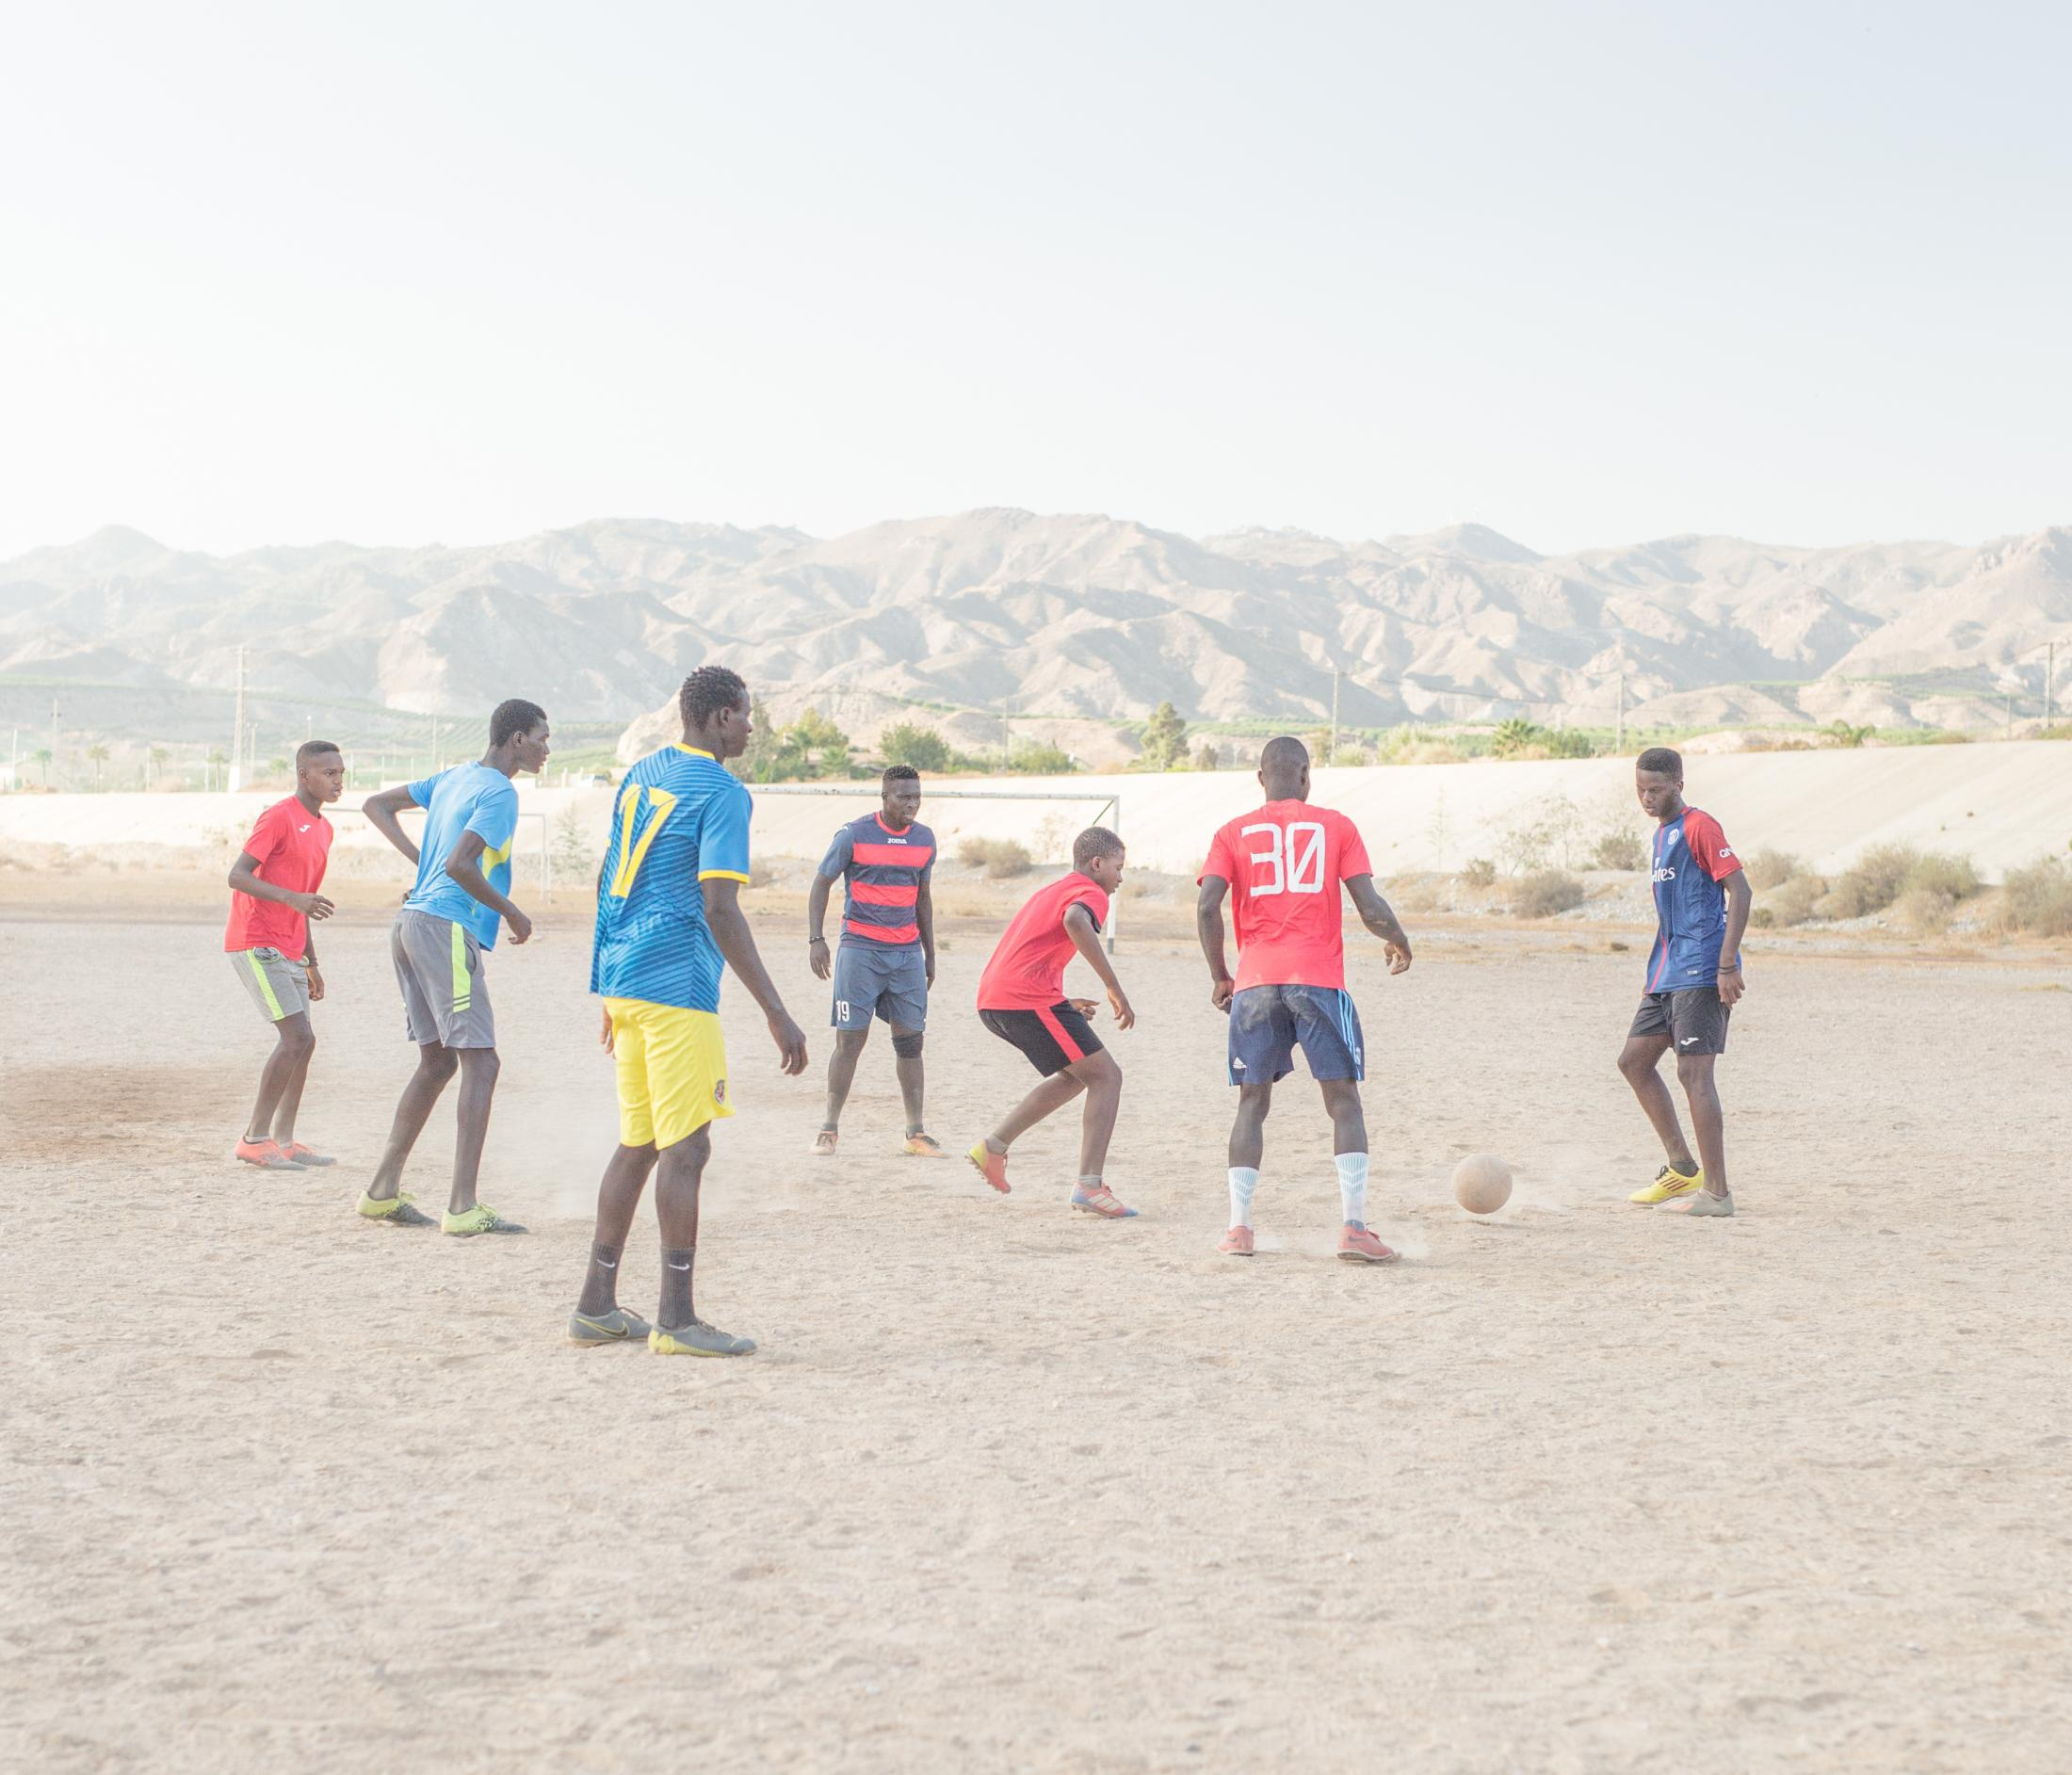 Instead of water flowing down, there is football. Some young people from Senegal enjoy a match every single day at 7pm (but Mondays), in the outskirts of Cuevas del Almanzora (Almeria), where is located the Almanzora, an almost completely dried-out river during its course due to droughts and agricultural industry practices. Several companies control the water coursing of this scarce land. Almeria. Cuevas del Almanzora, August 2020.